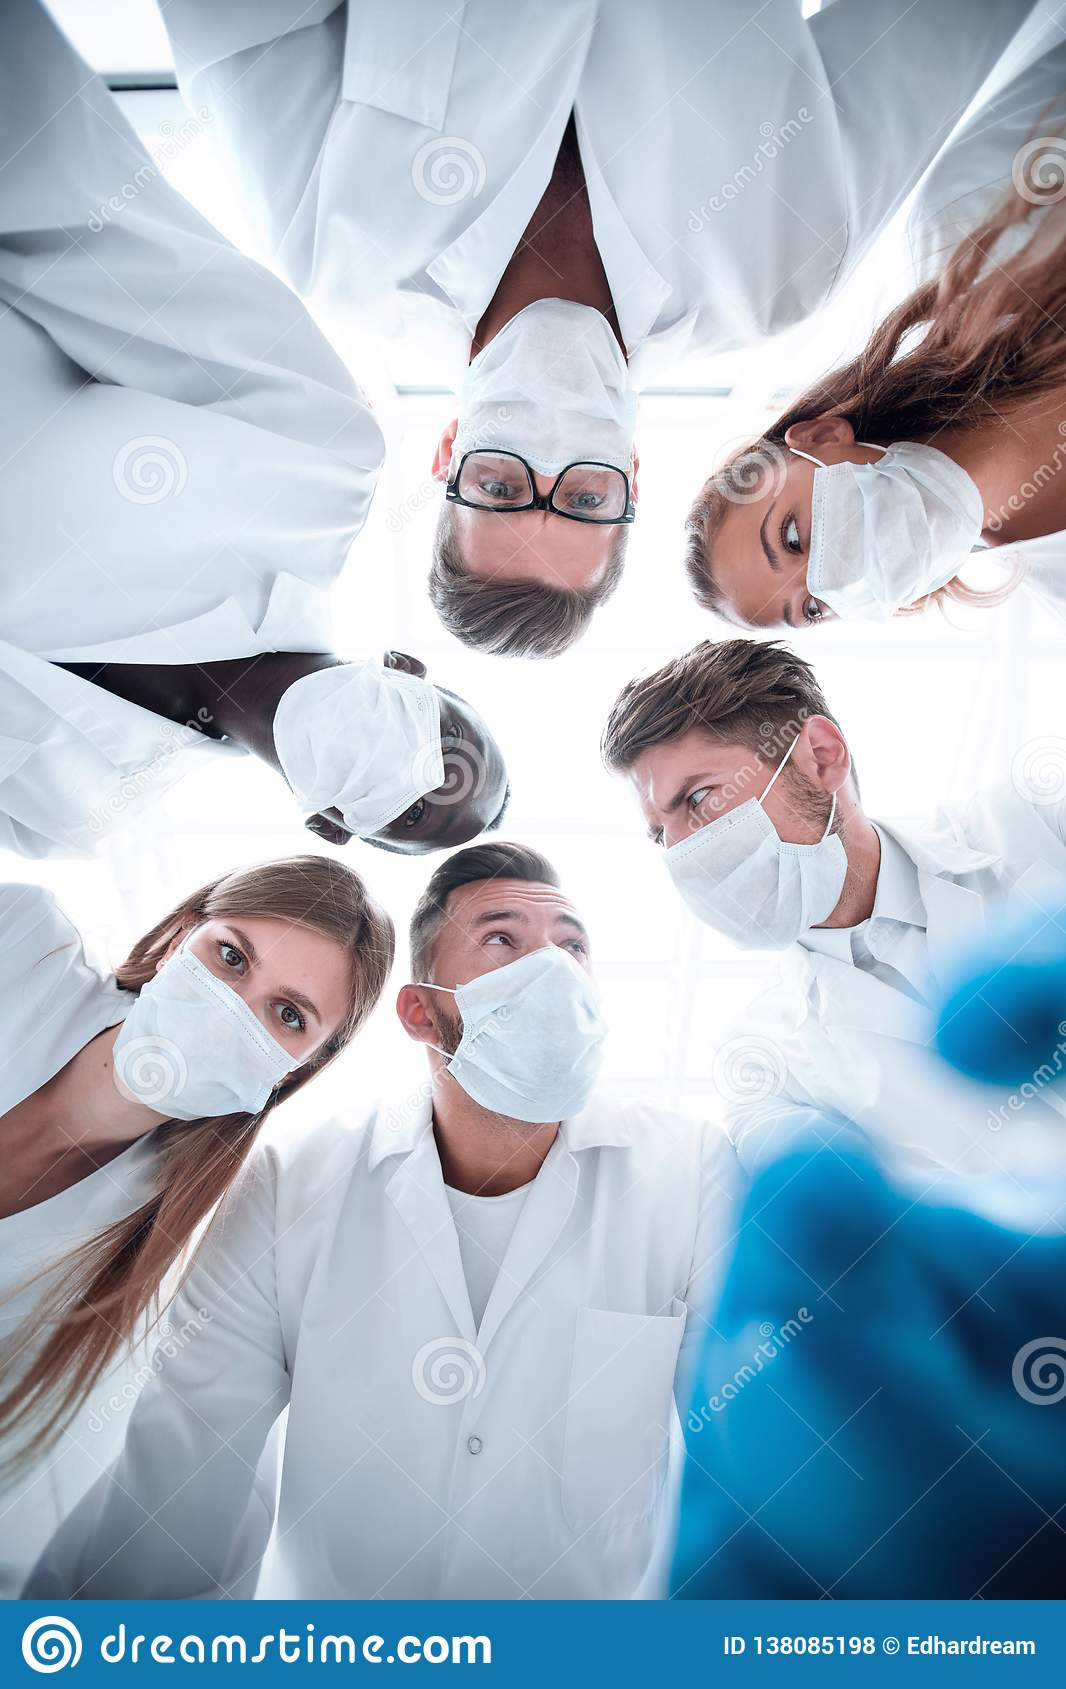 Surgeons looking down patient hospital